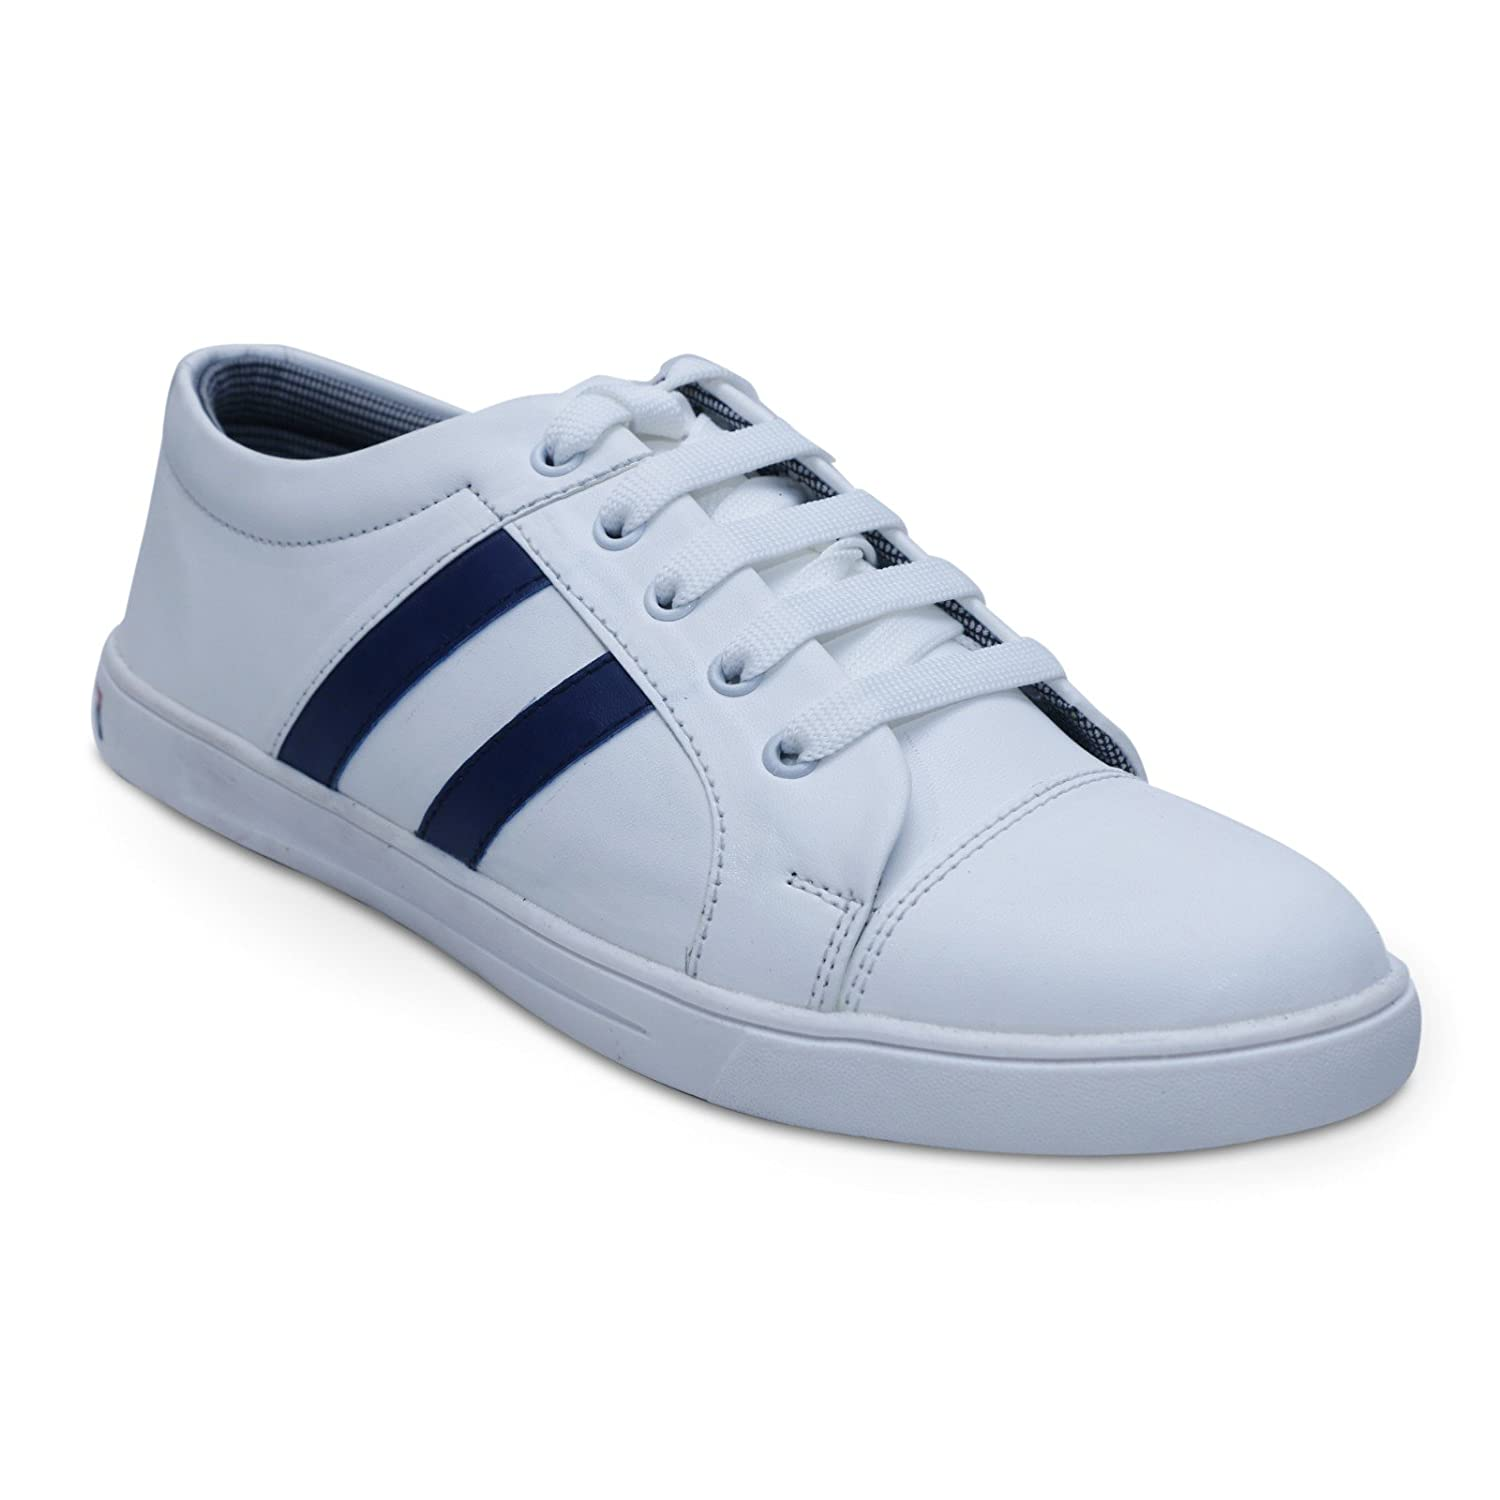 casual shoes for boys under 500 off 55